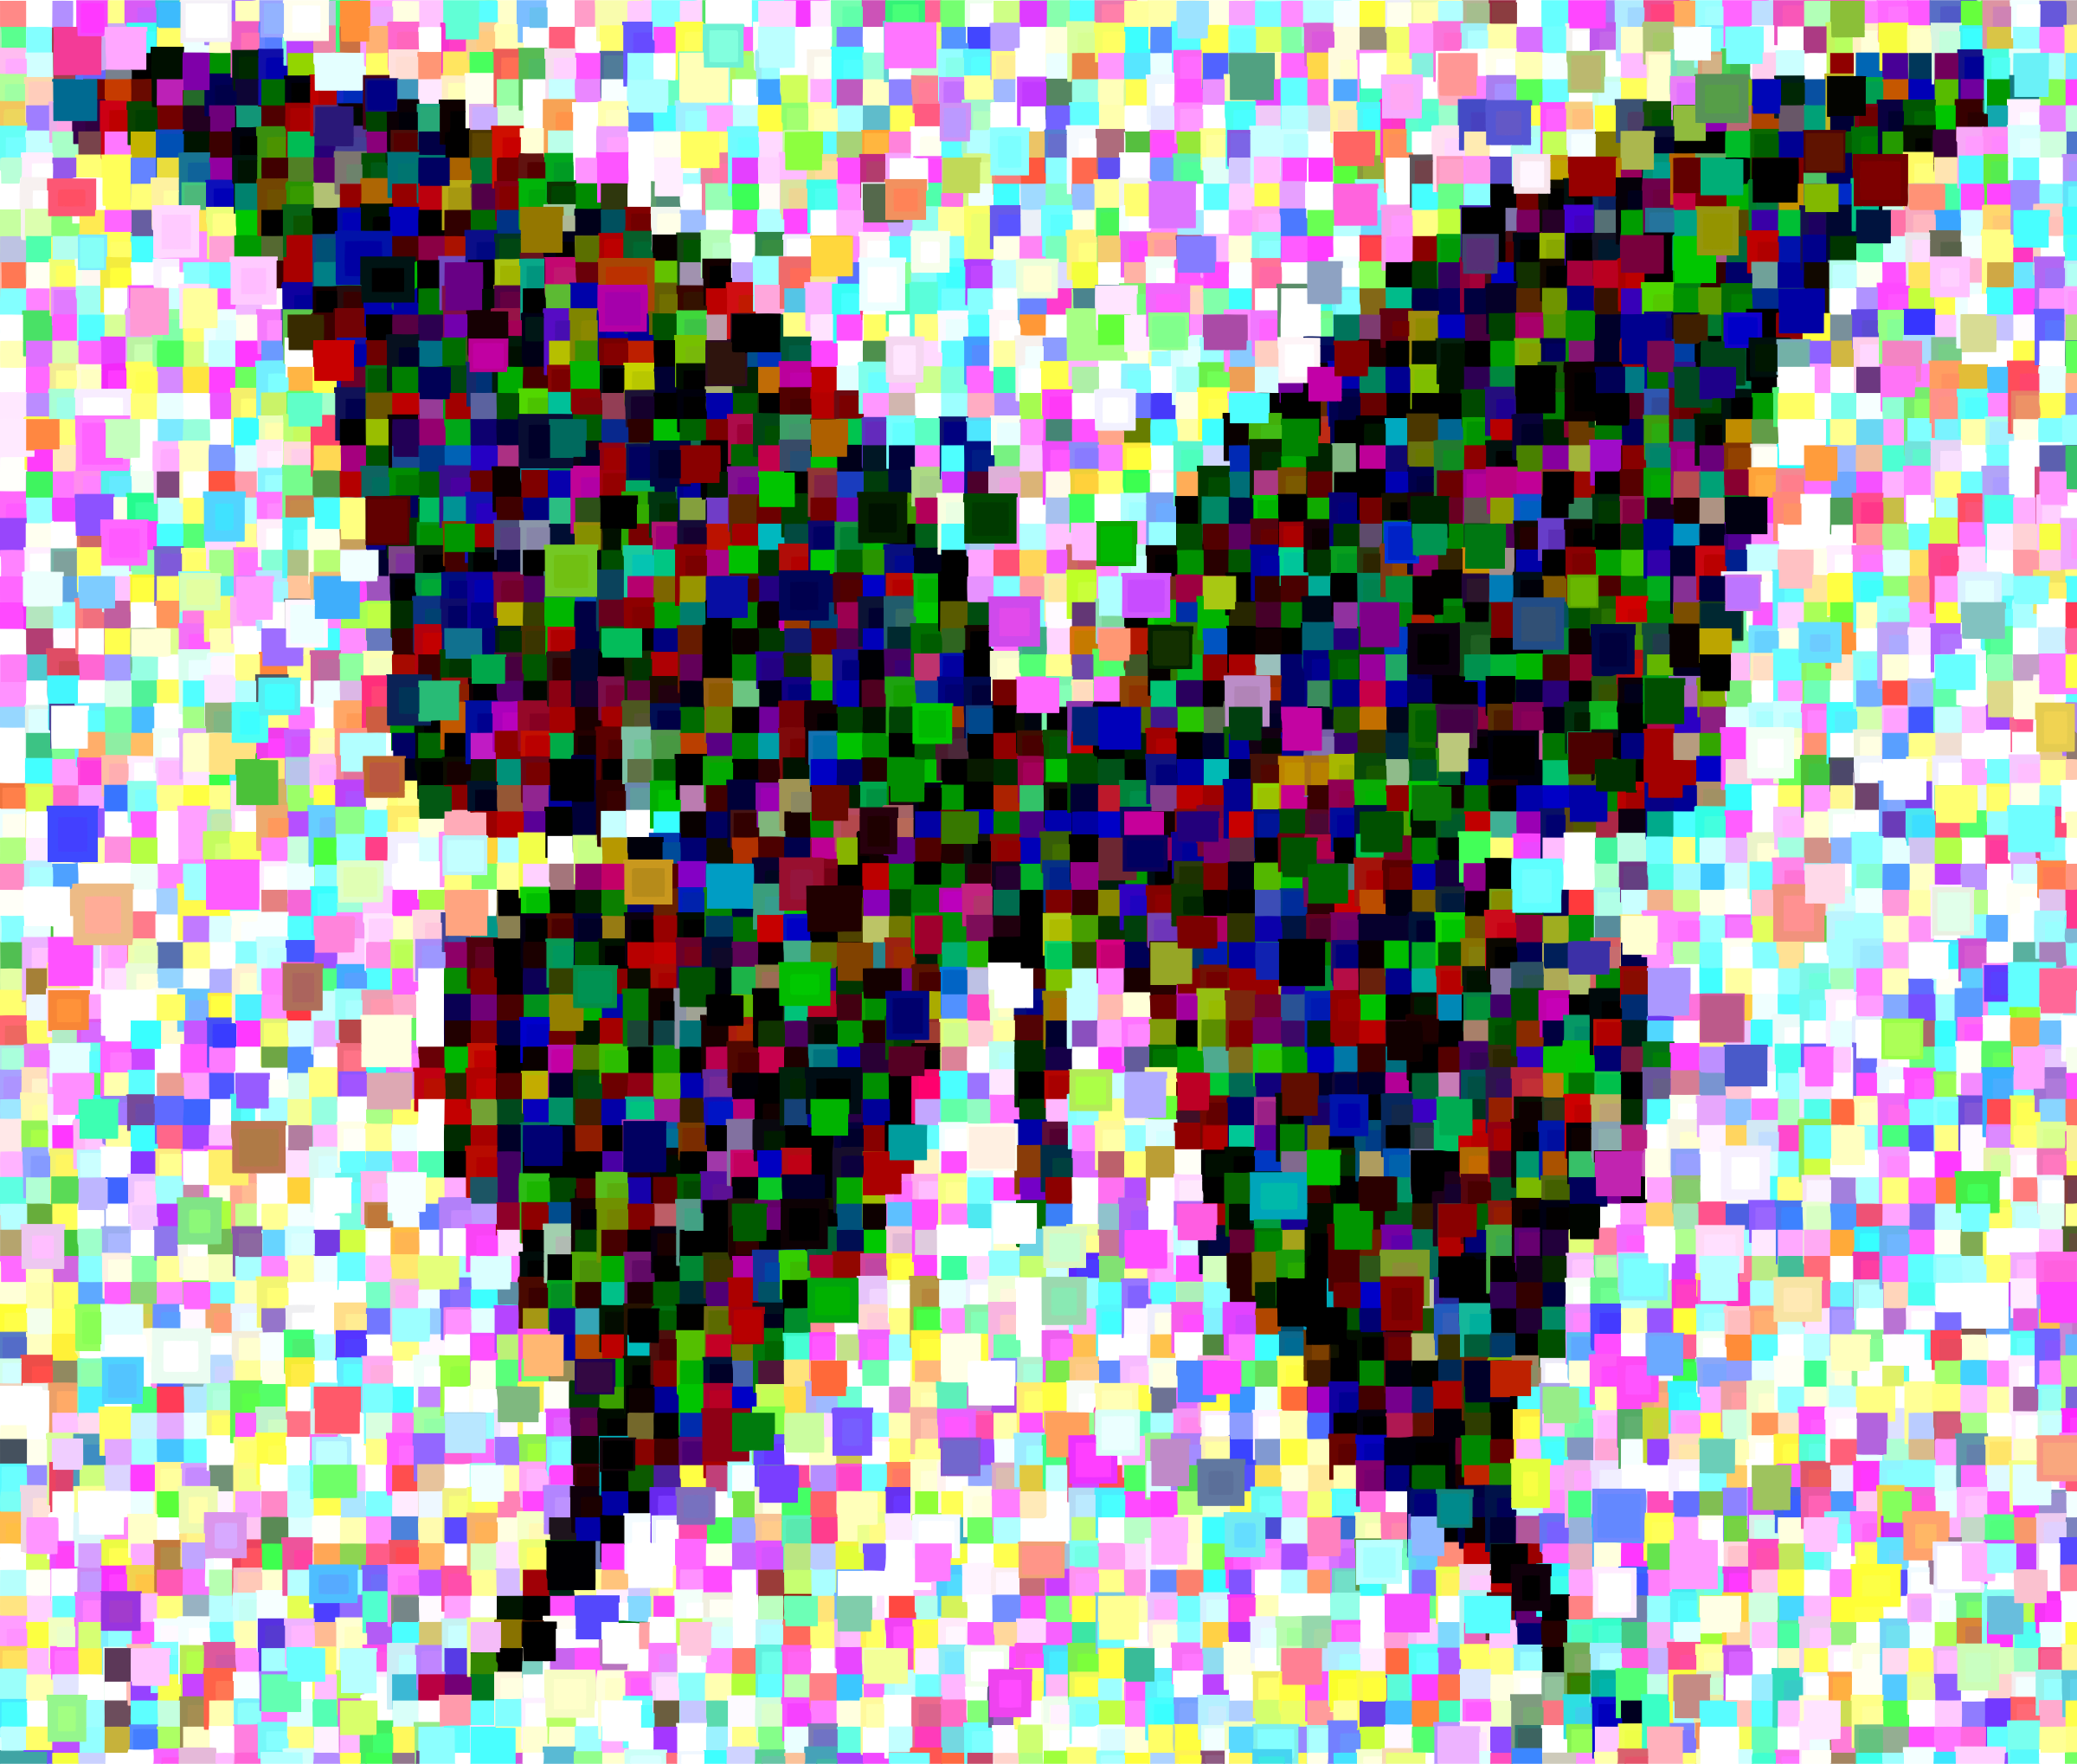 Butterfly Silhouette 6 Confetti Mosaic by GDJ